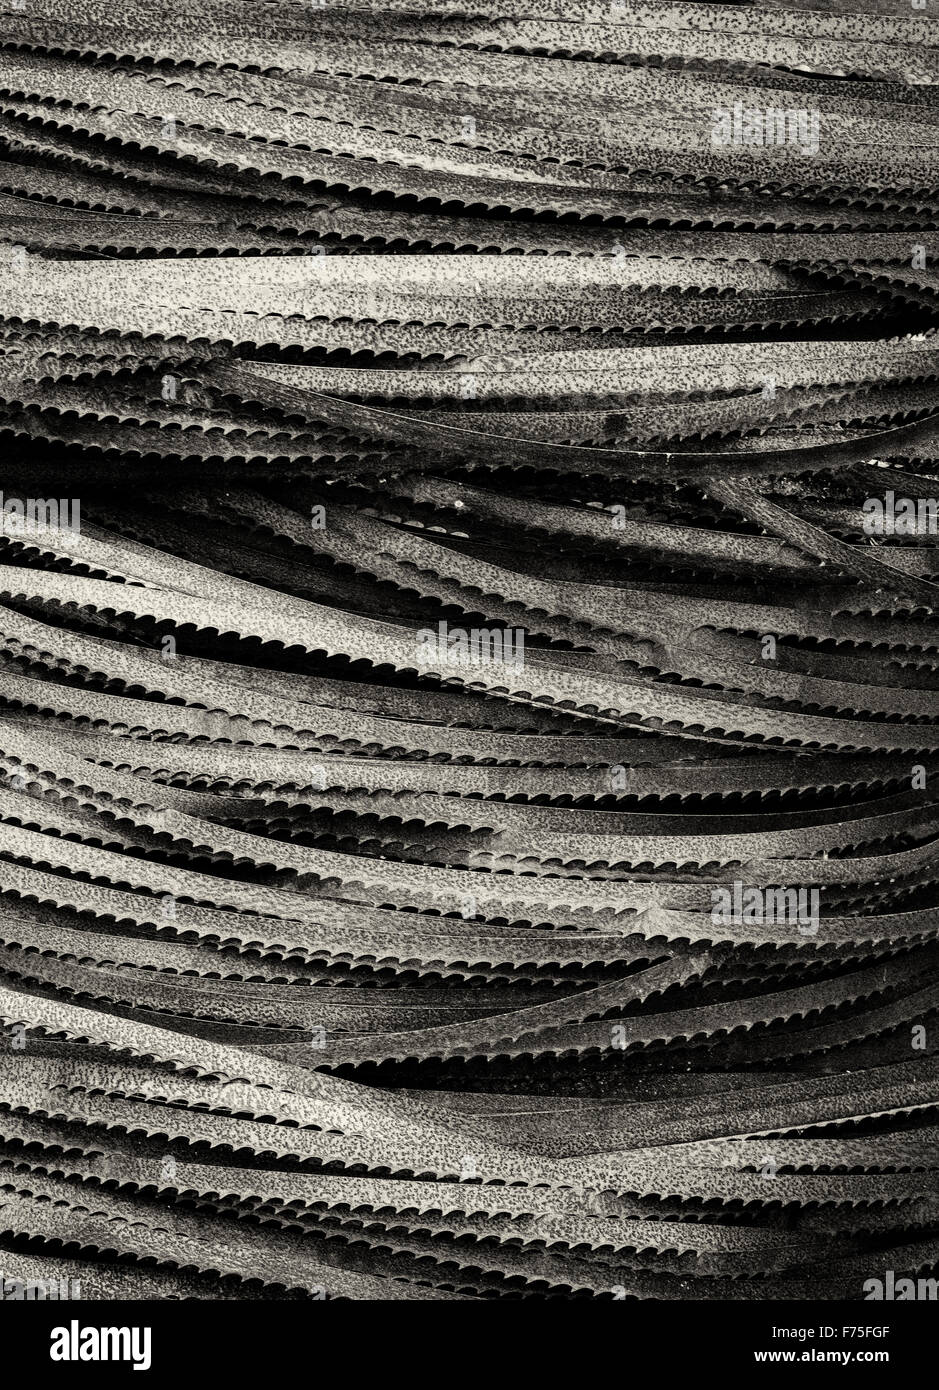 Stack of band saw blades - Stock Image